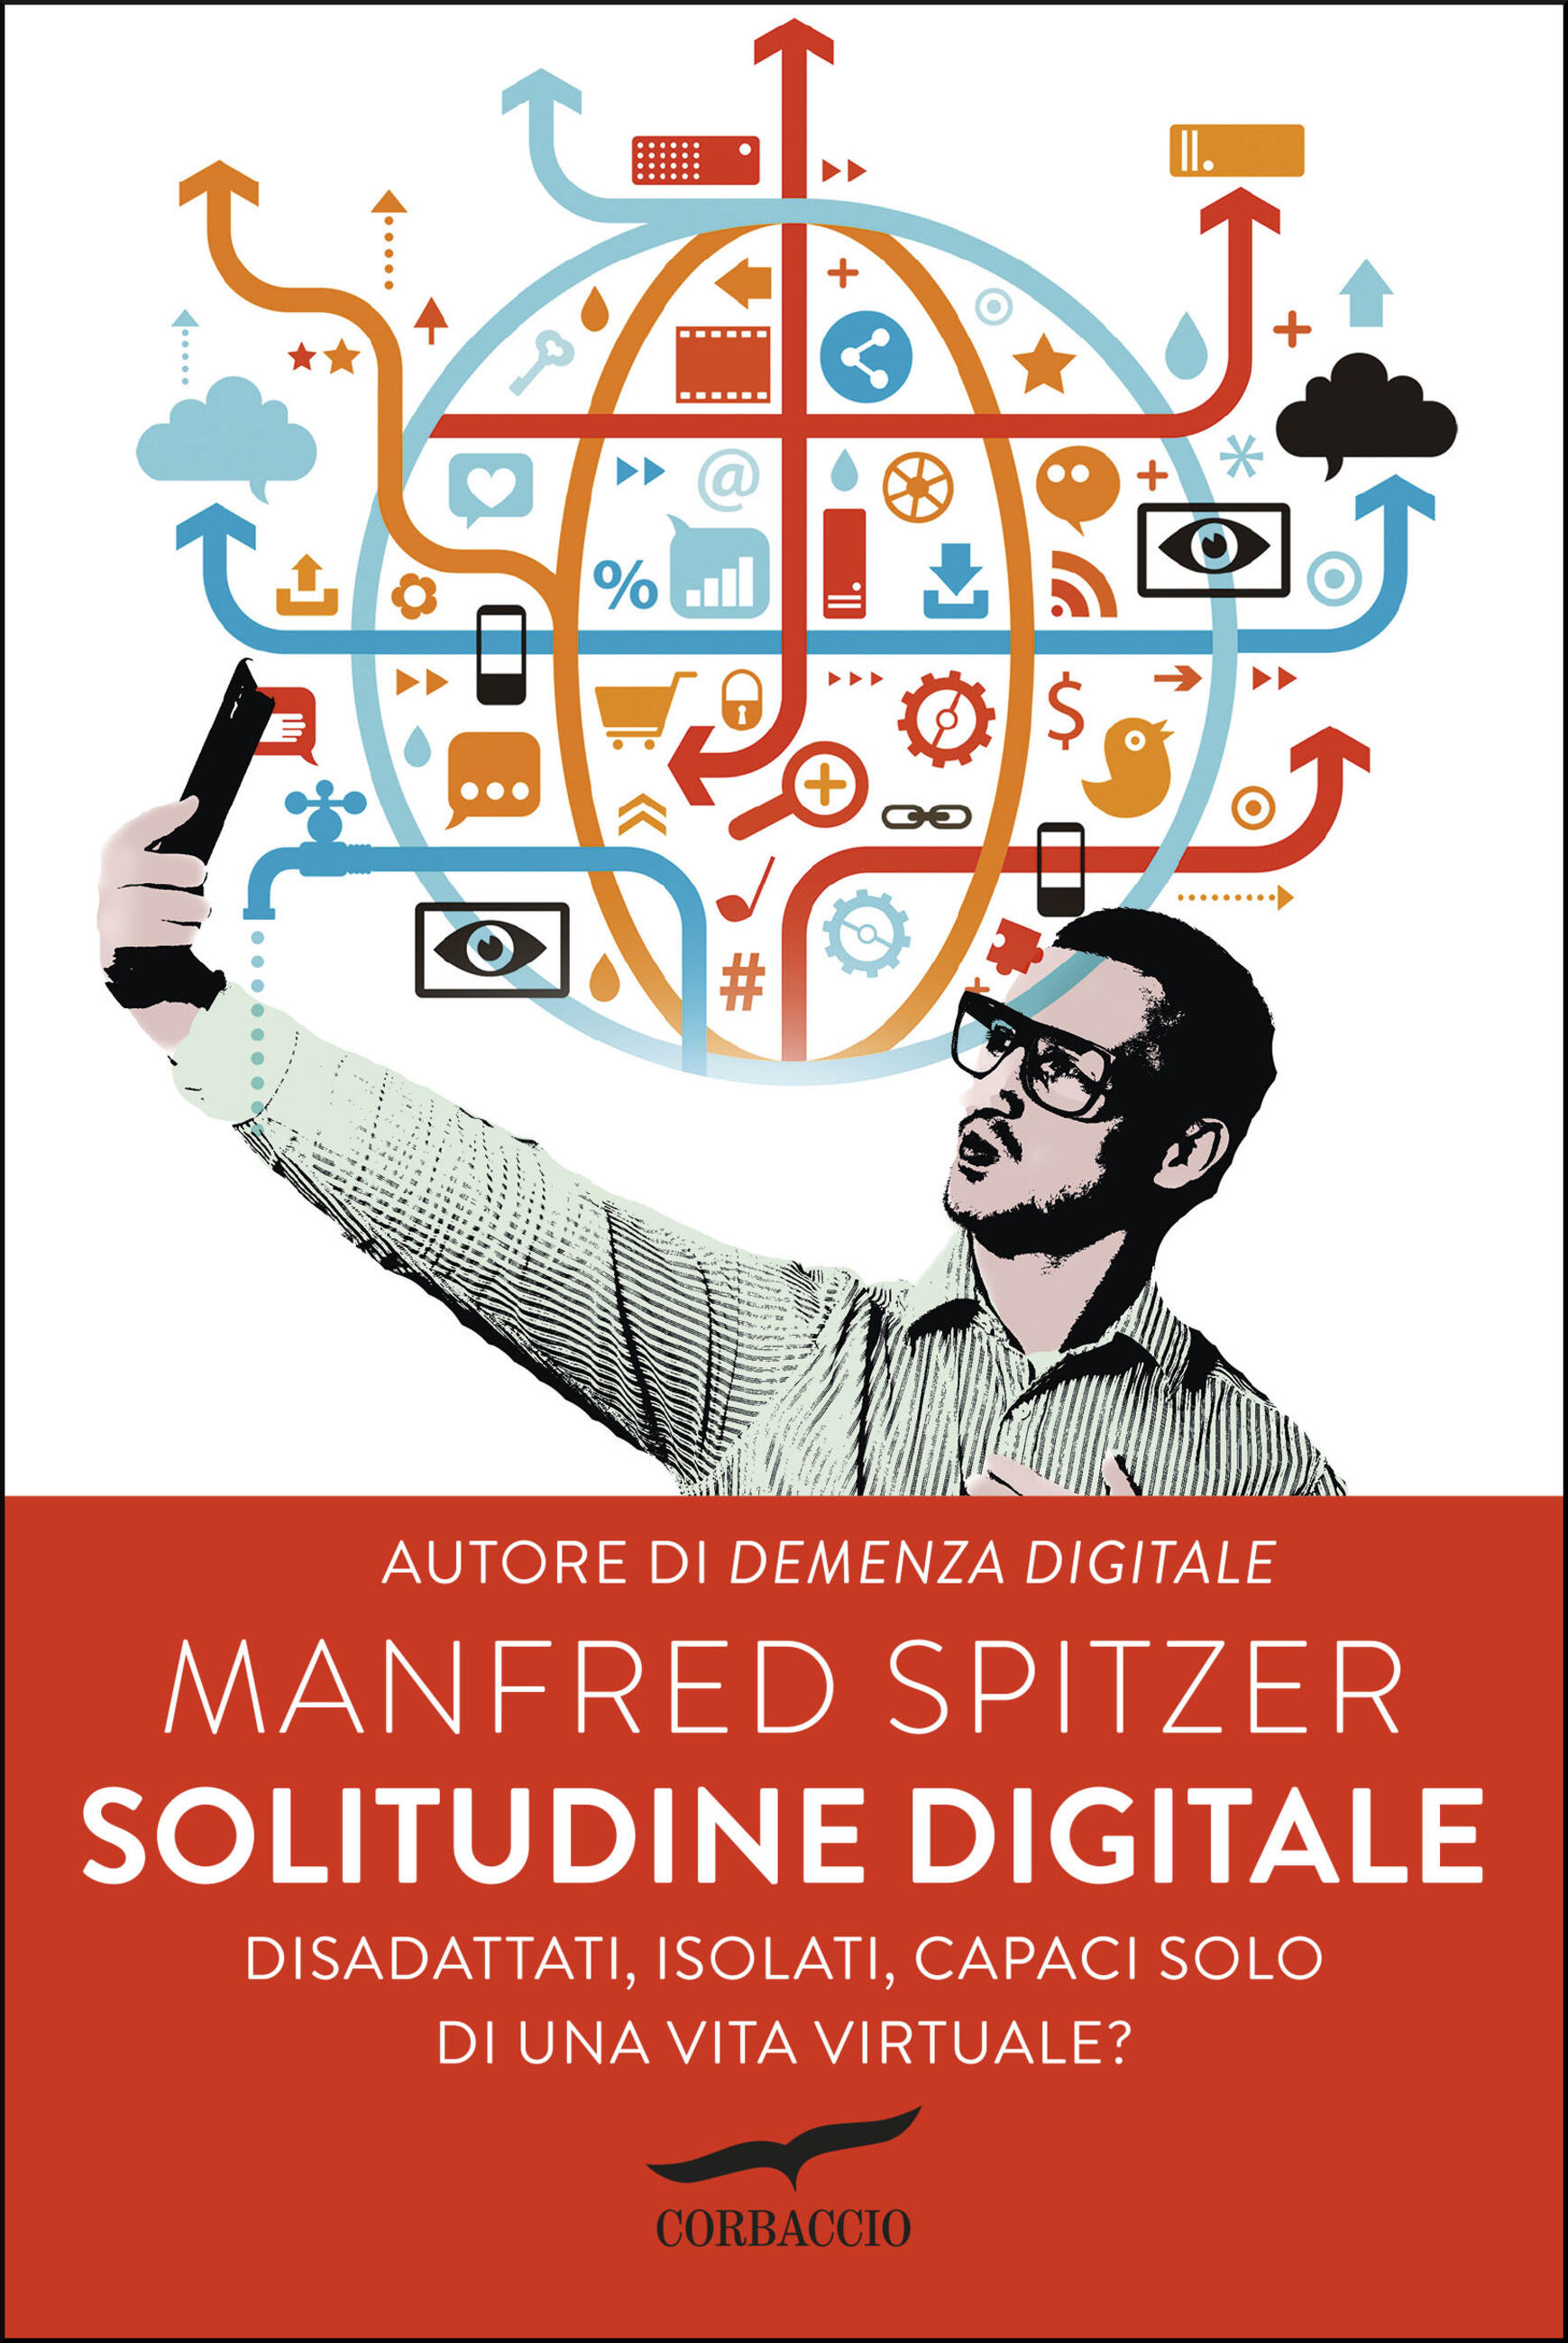 MANFRED SPITZER DIGITALE DEMENZ PDF